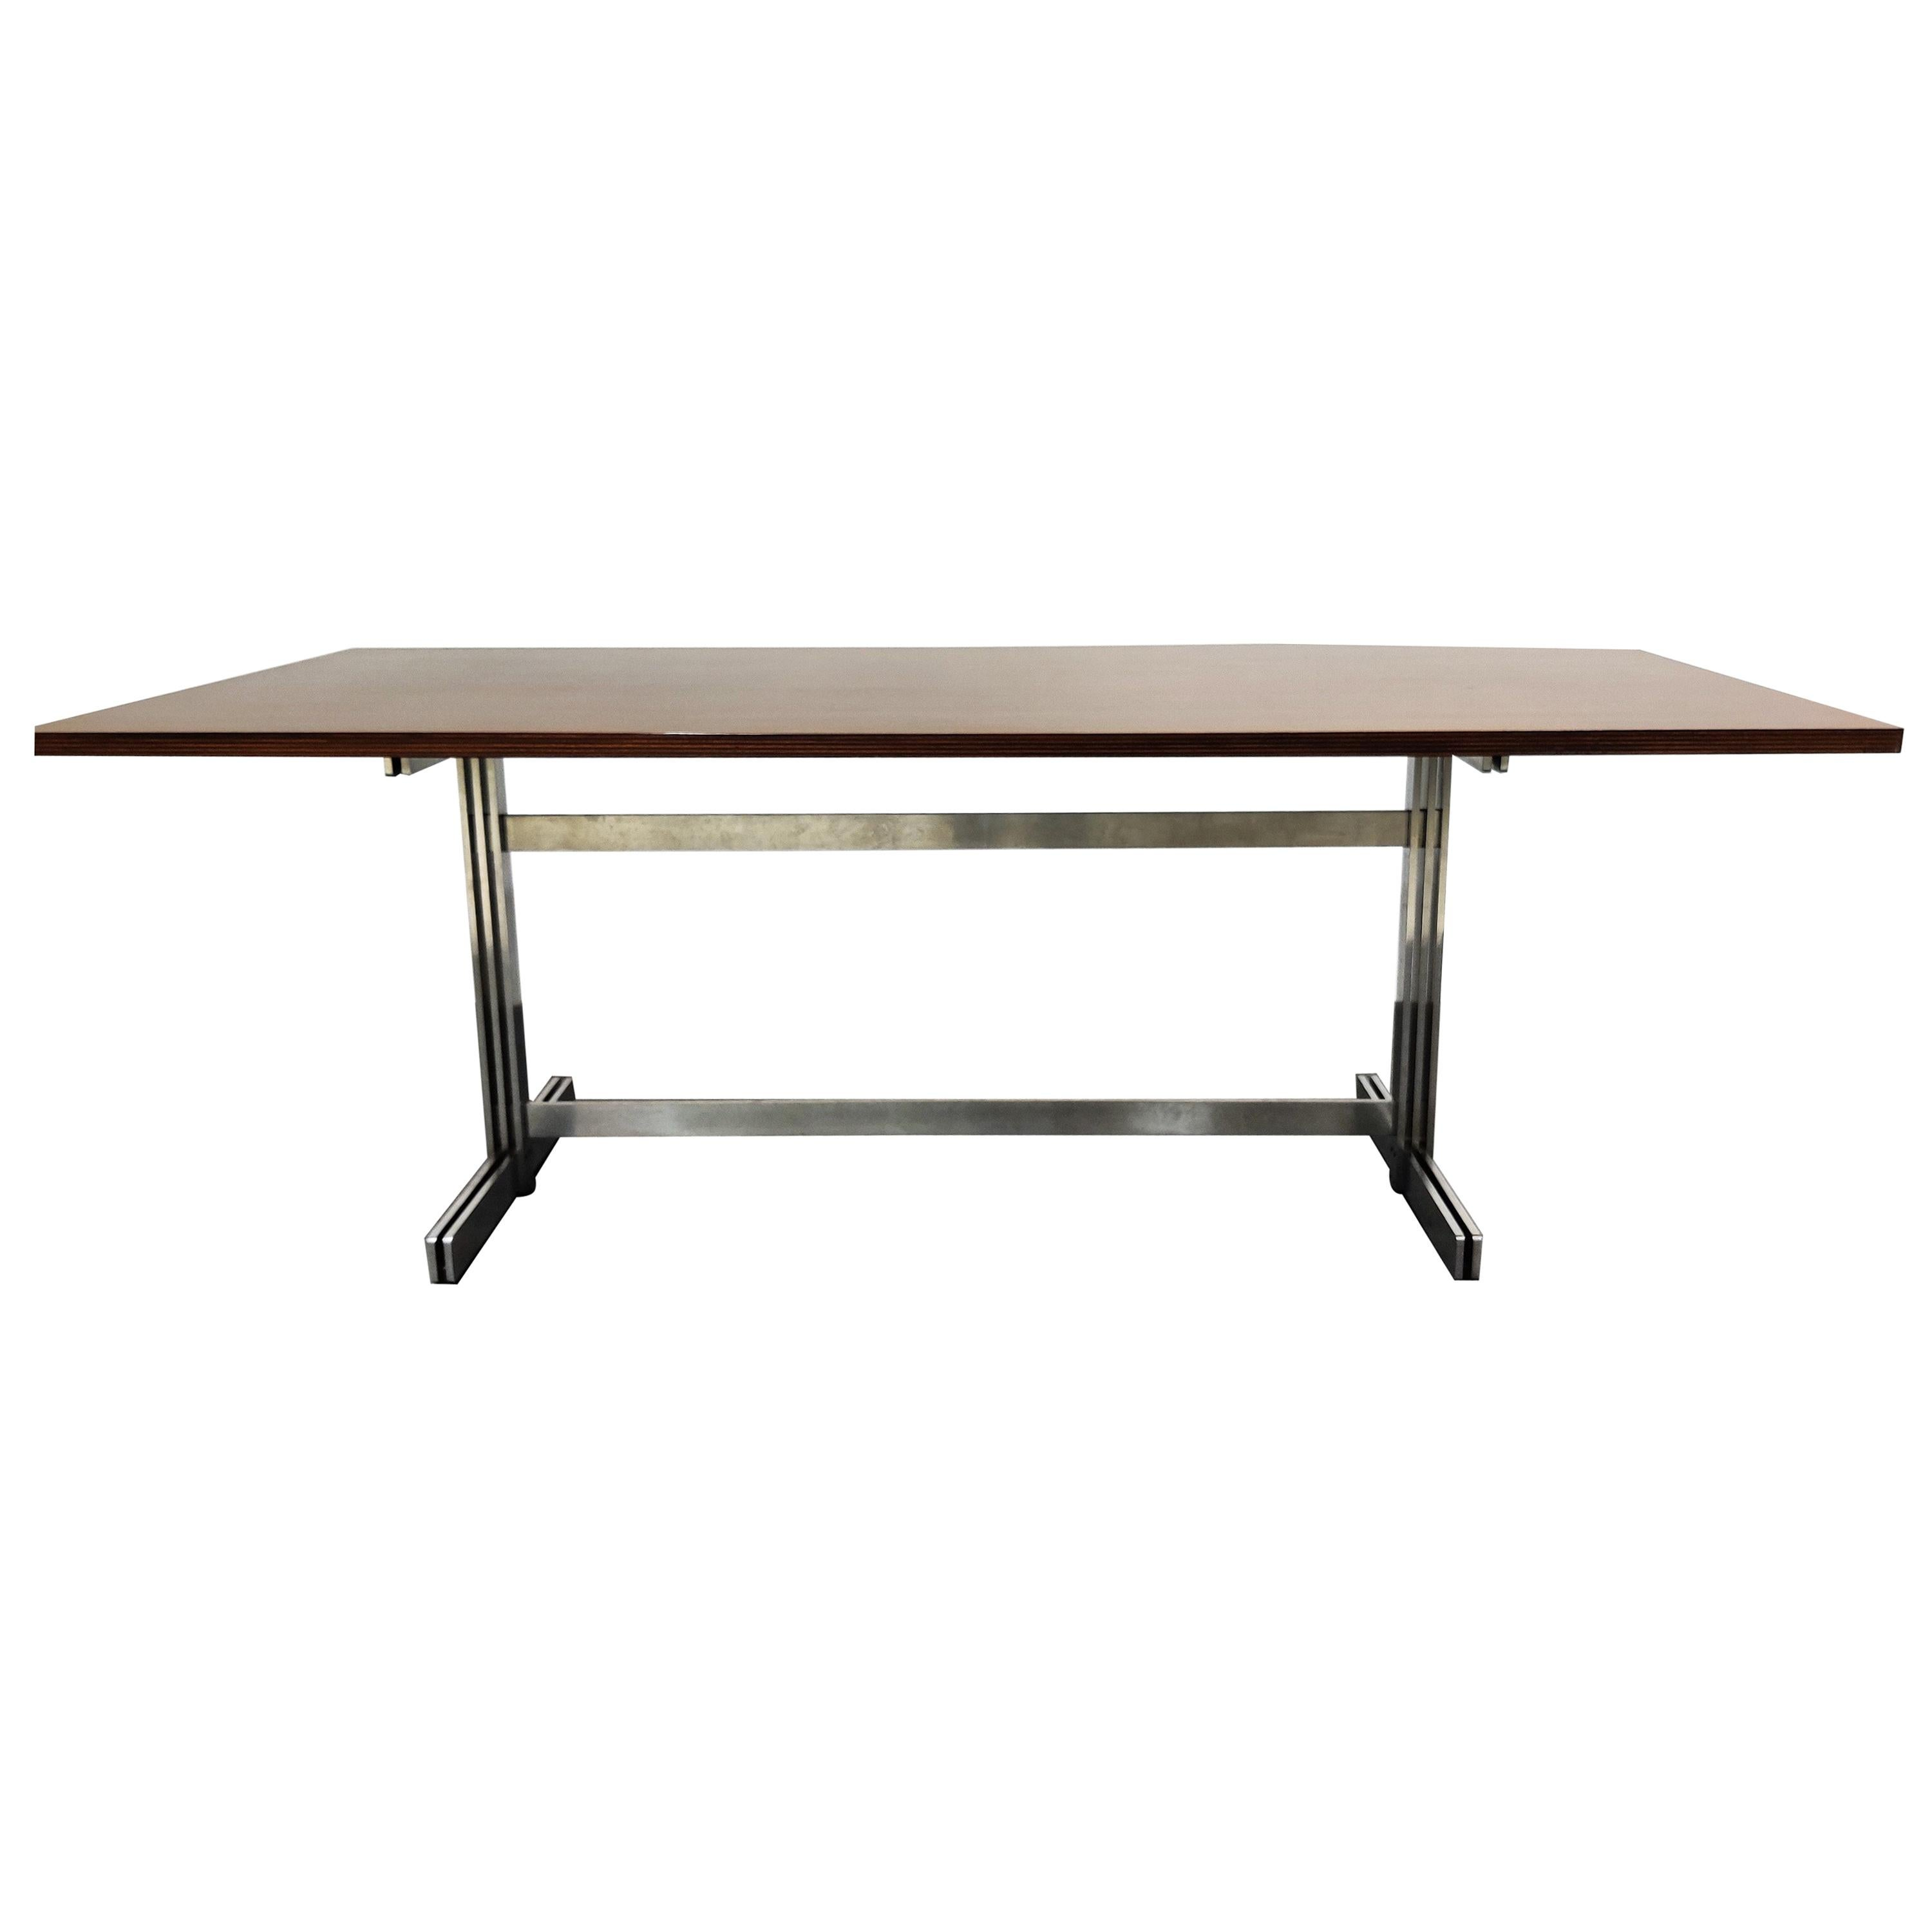 Dining Table by Jules Wabbes for Mobilier Universel, 1960s